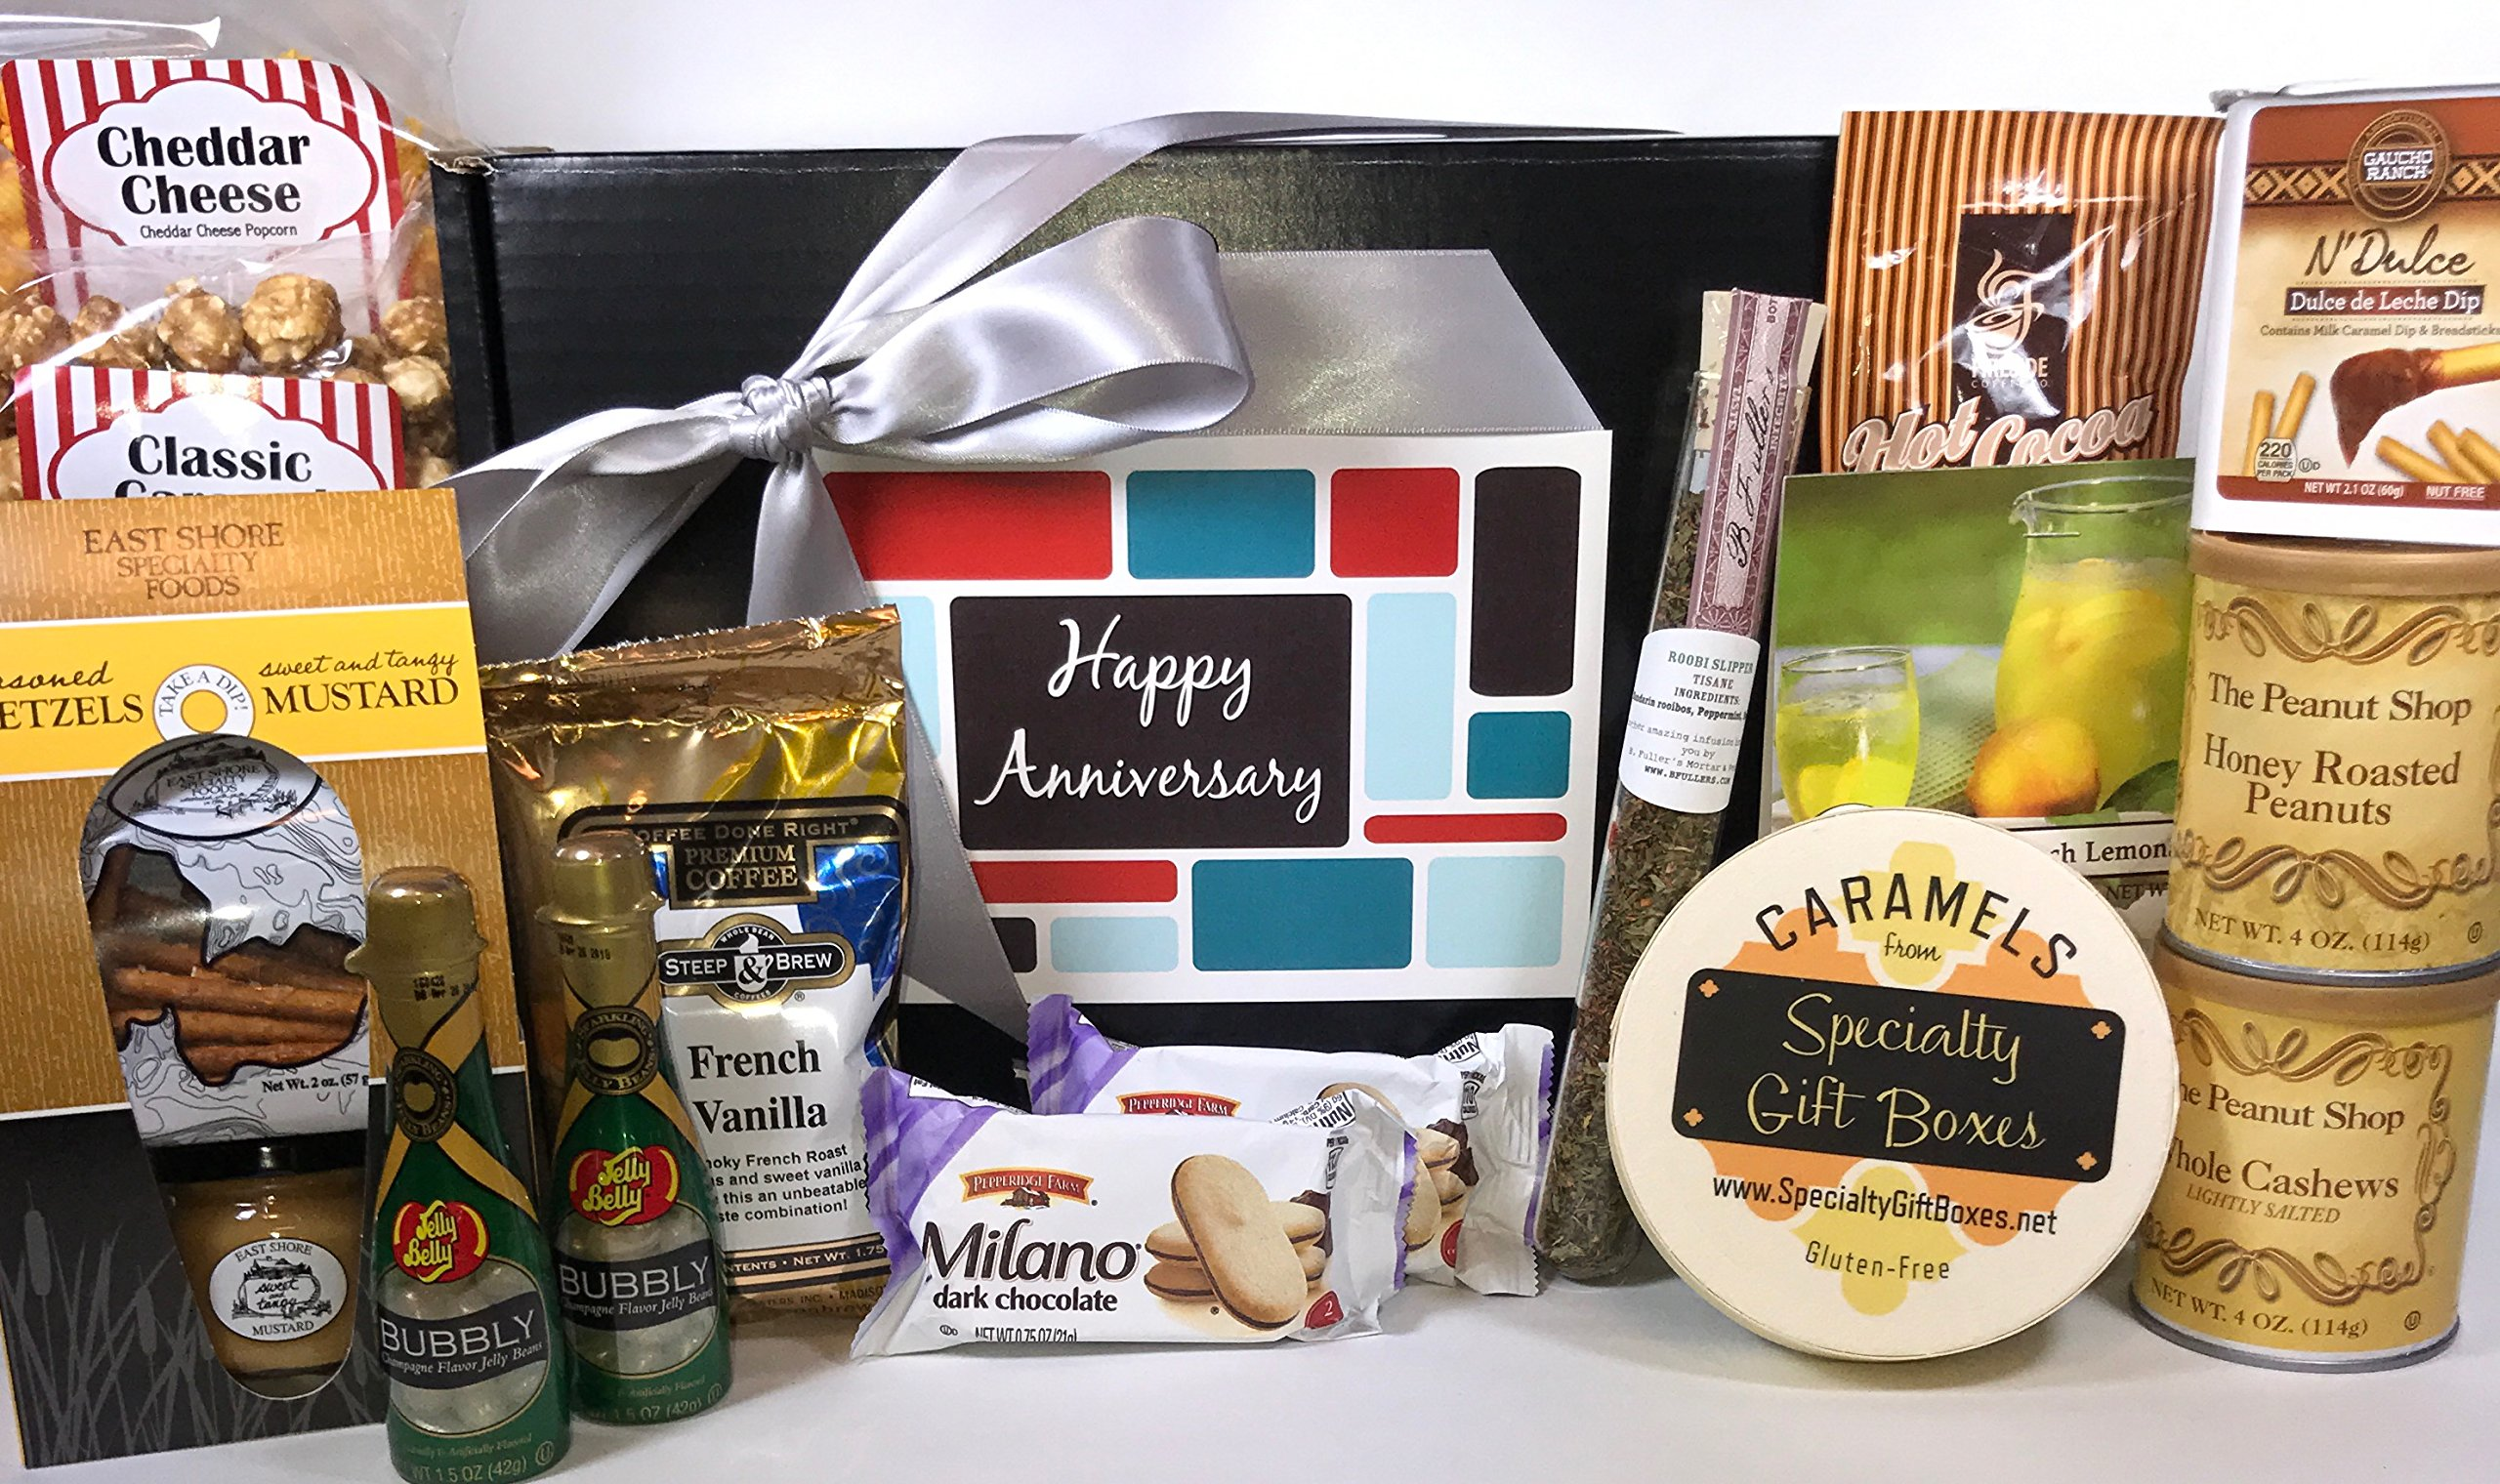 Gourmet Happy Anniversary Gift Basket Box Prime - Almost 4 Pounds - Remember a Special Couple with this Special Box - Great for 25th 25 and 50th 50 Marriage Anniversaries and also Work Anniversaries! by Specialty Gift Boxes (Image #1)